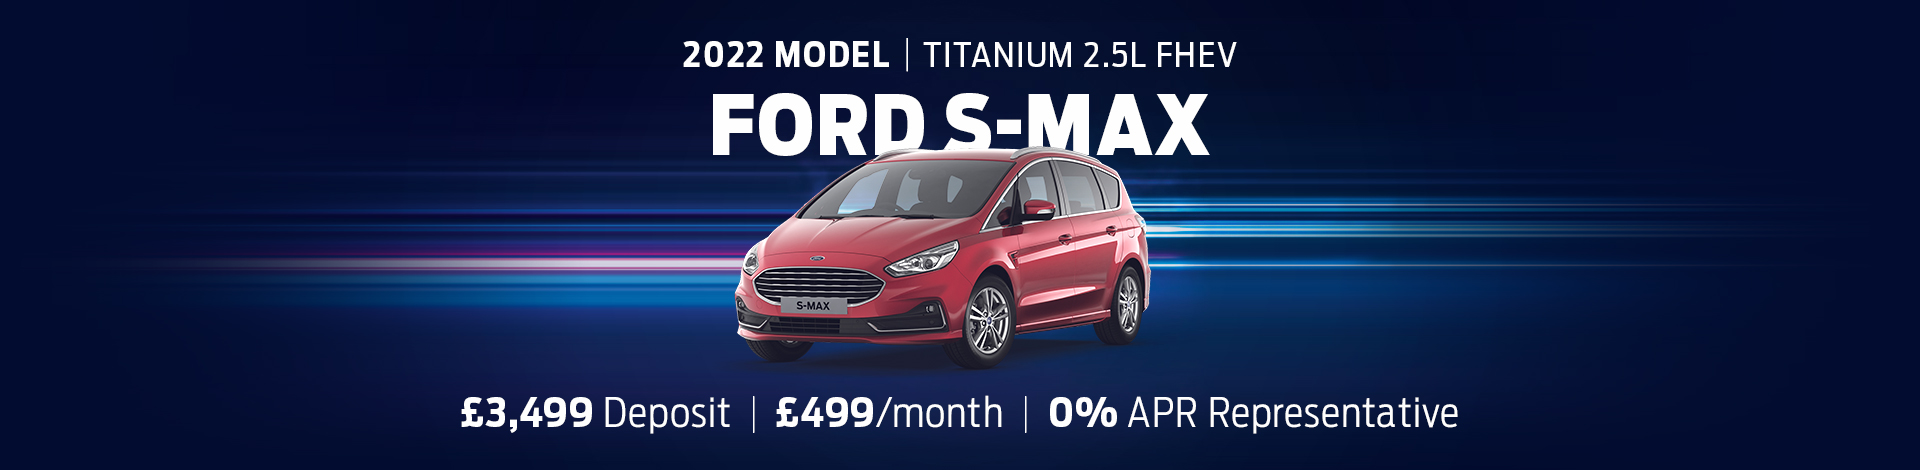 Ford S-Max Offer Banner (Oct 21)